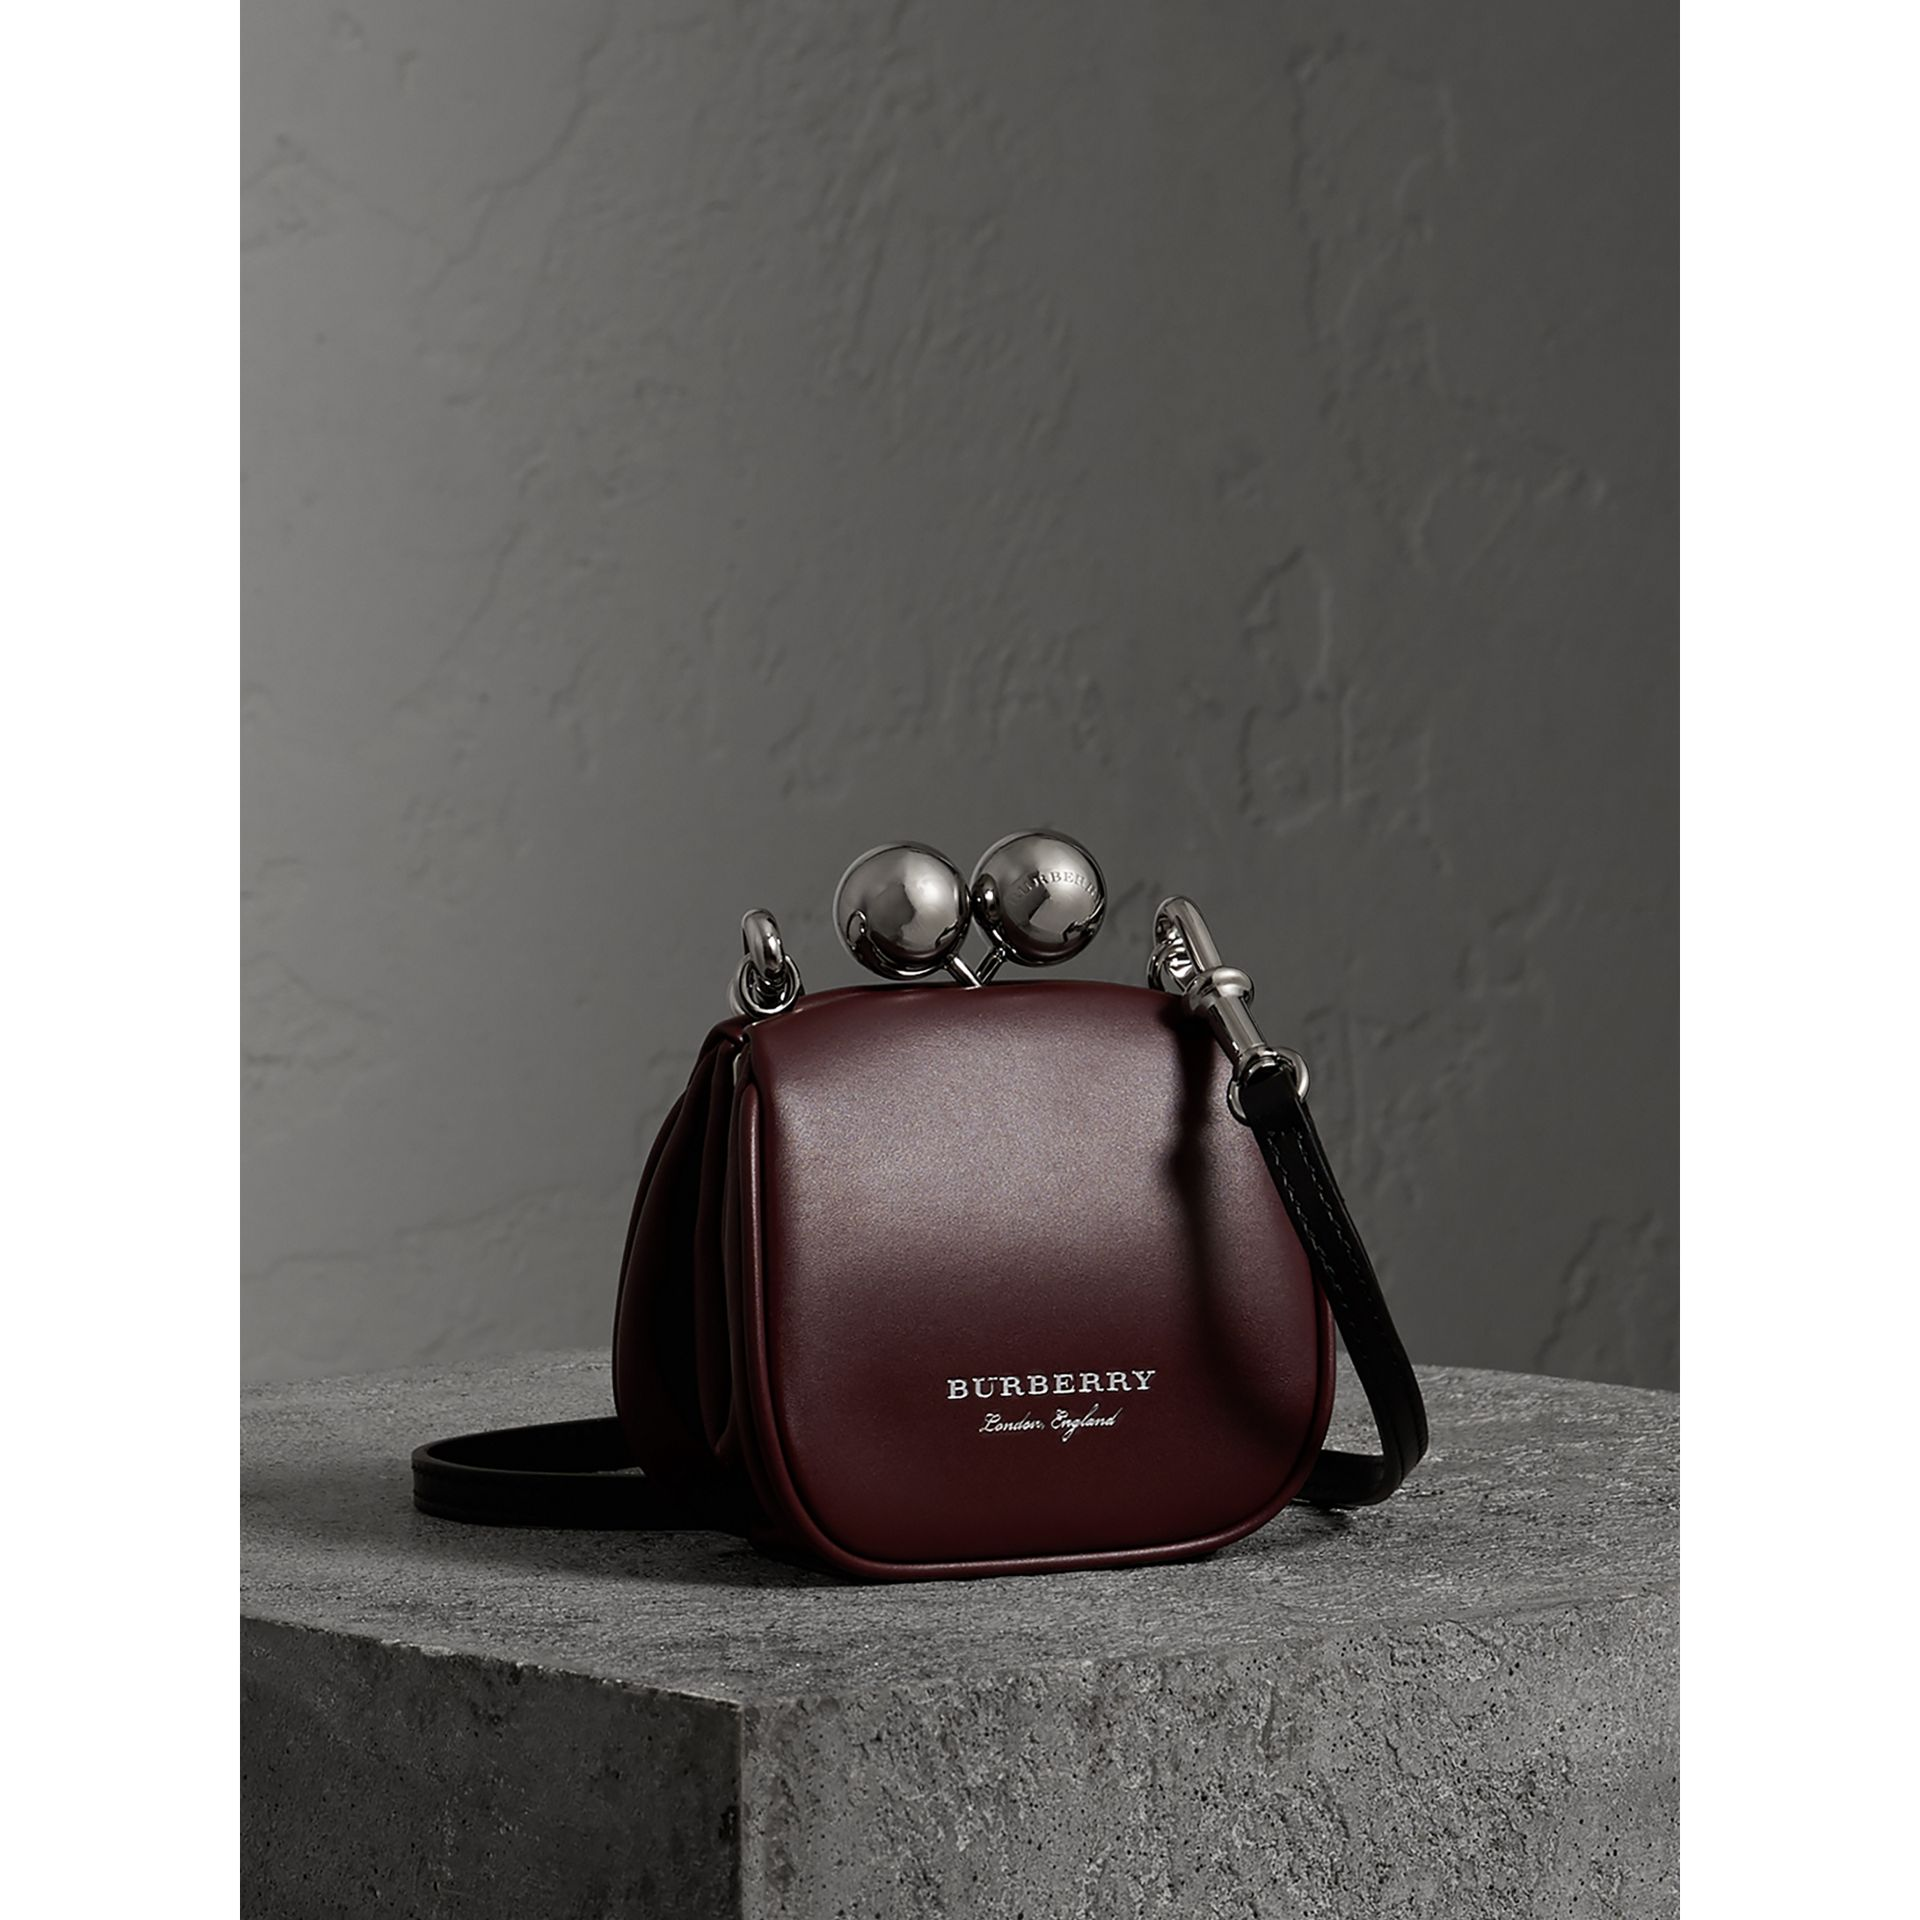 Mini Two-tone Leather Frame Bag in Burgundy - Women | Burberry United Kingdom - gallery image 6